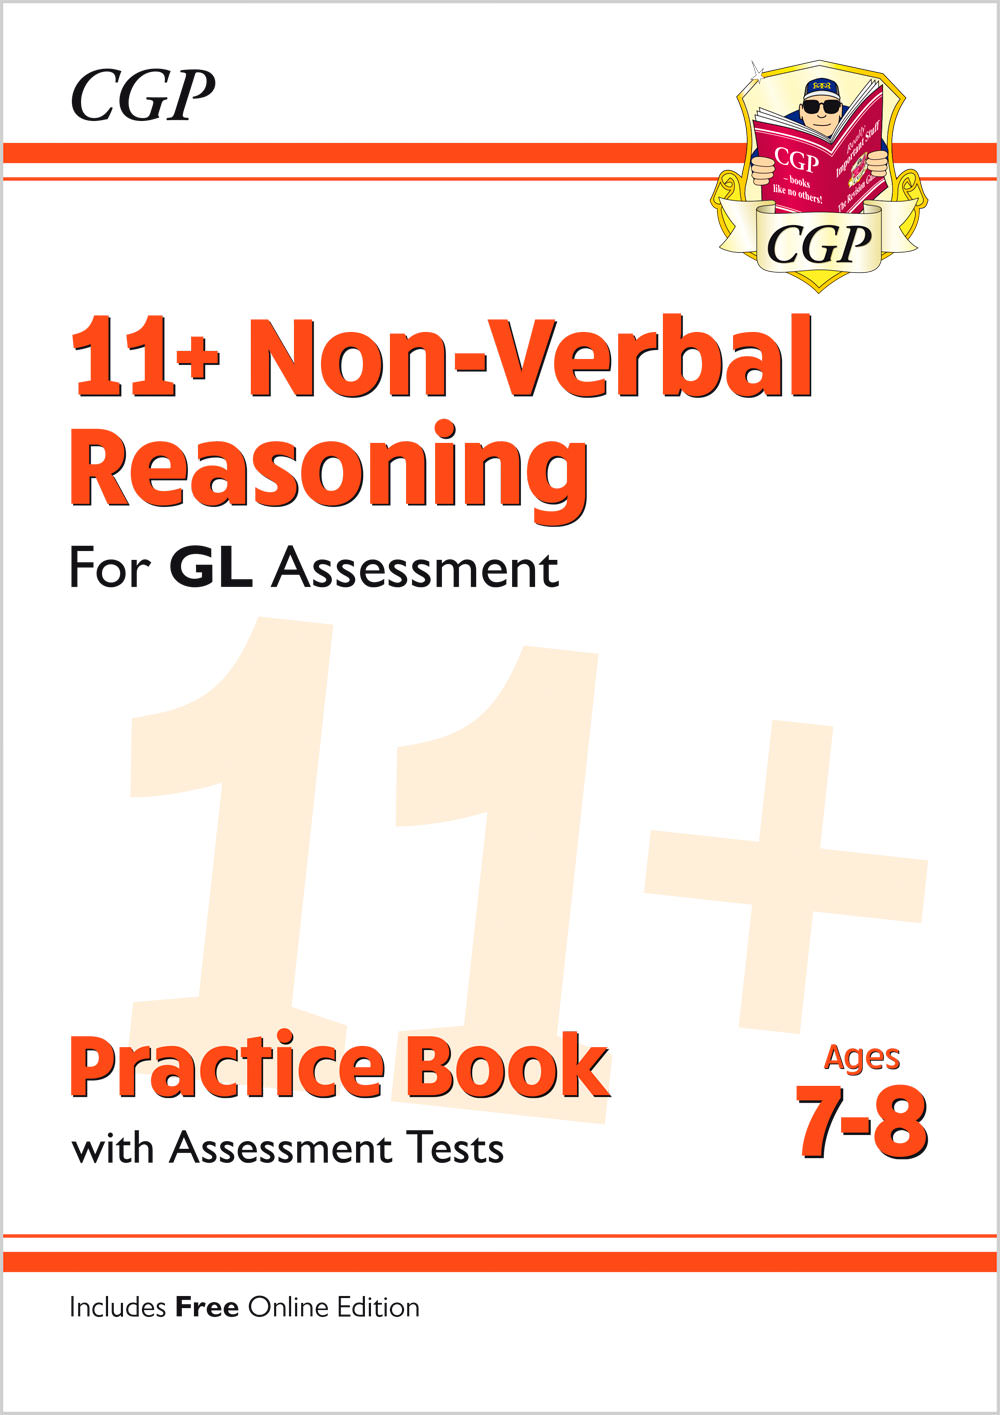 N3QE2 - 11+ GL Non-Verbal Reasoning Practice Book & Assessment Tests - Ages 7-8 (with Online Edition